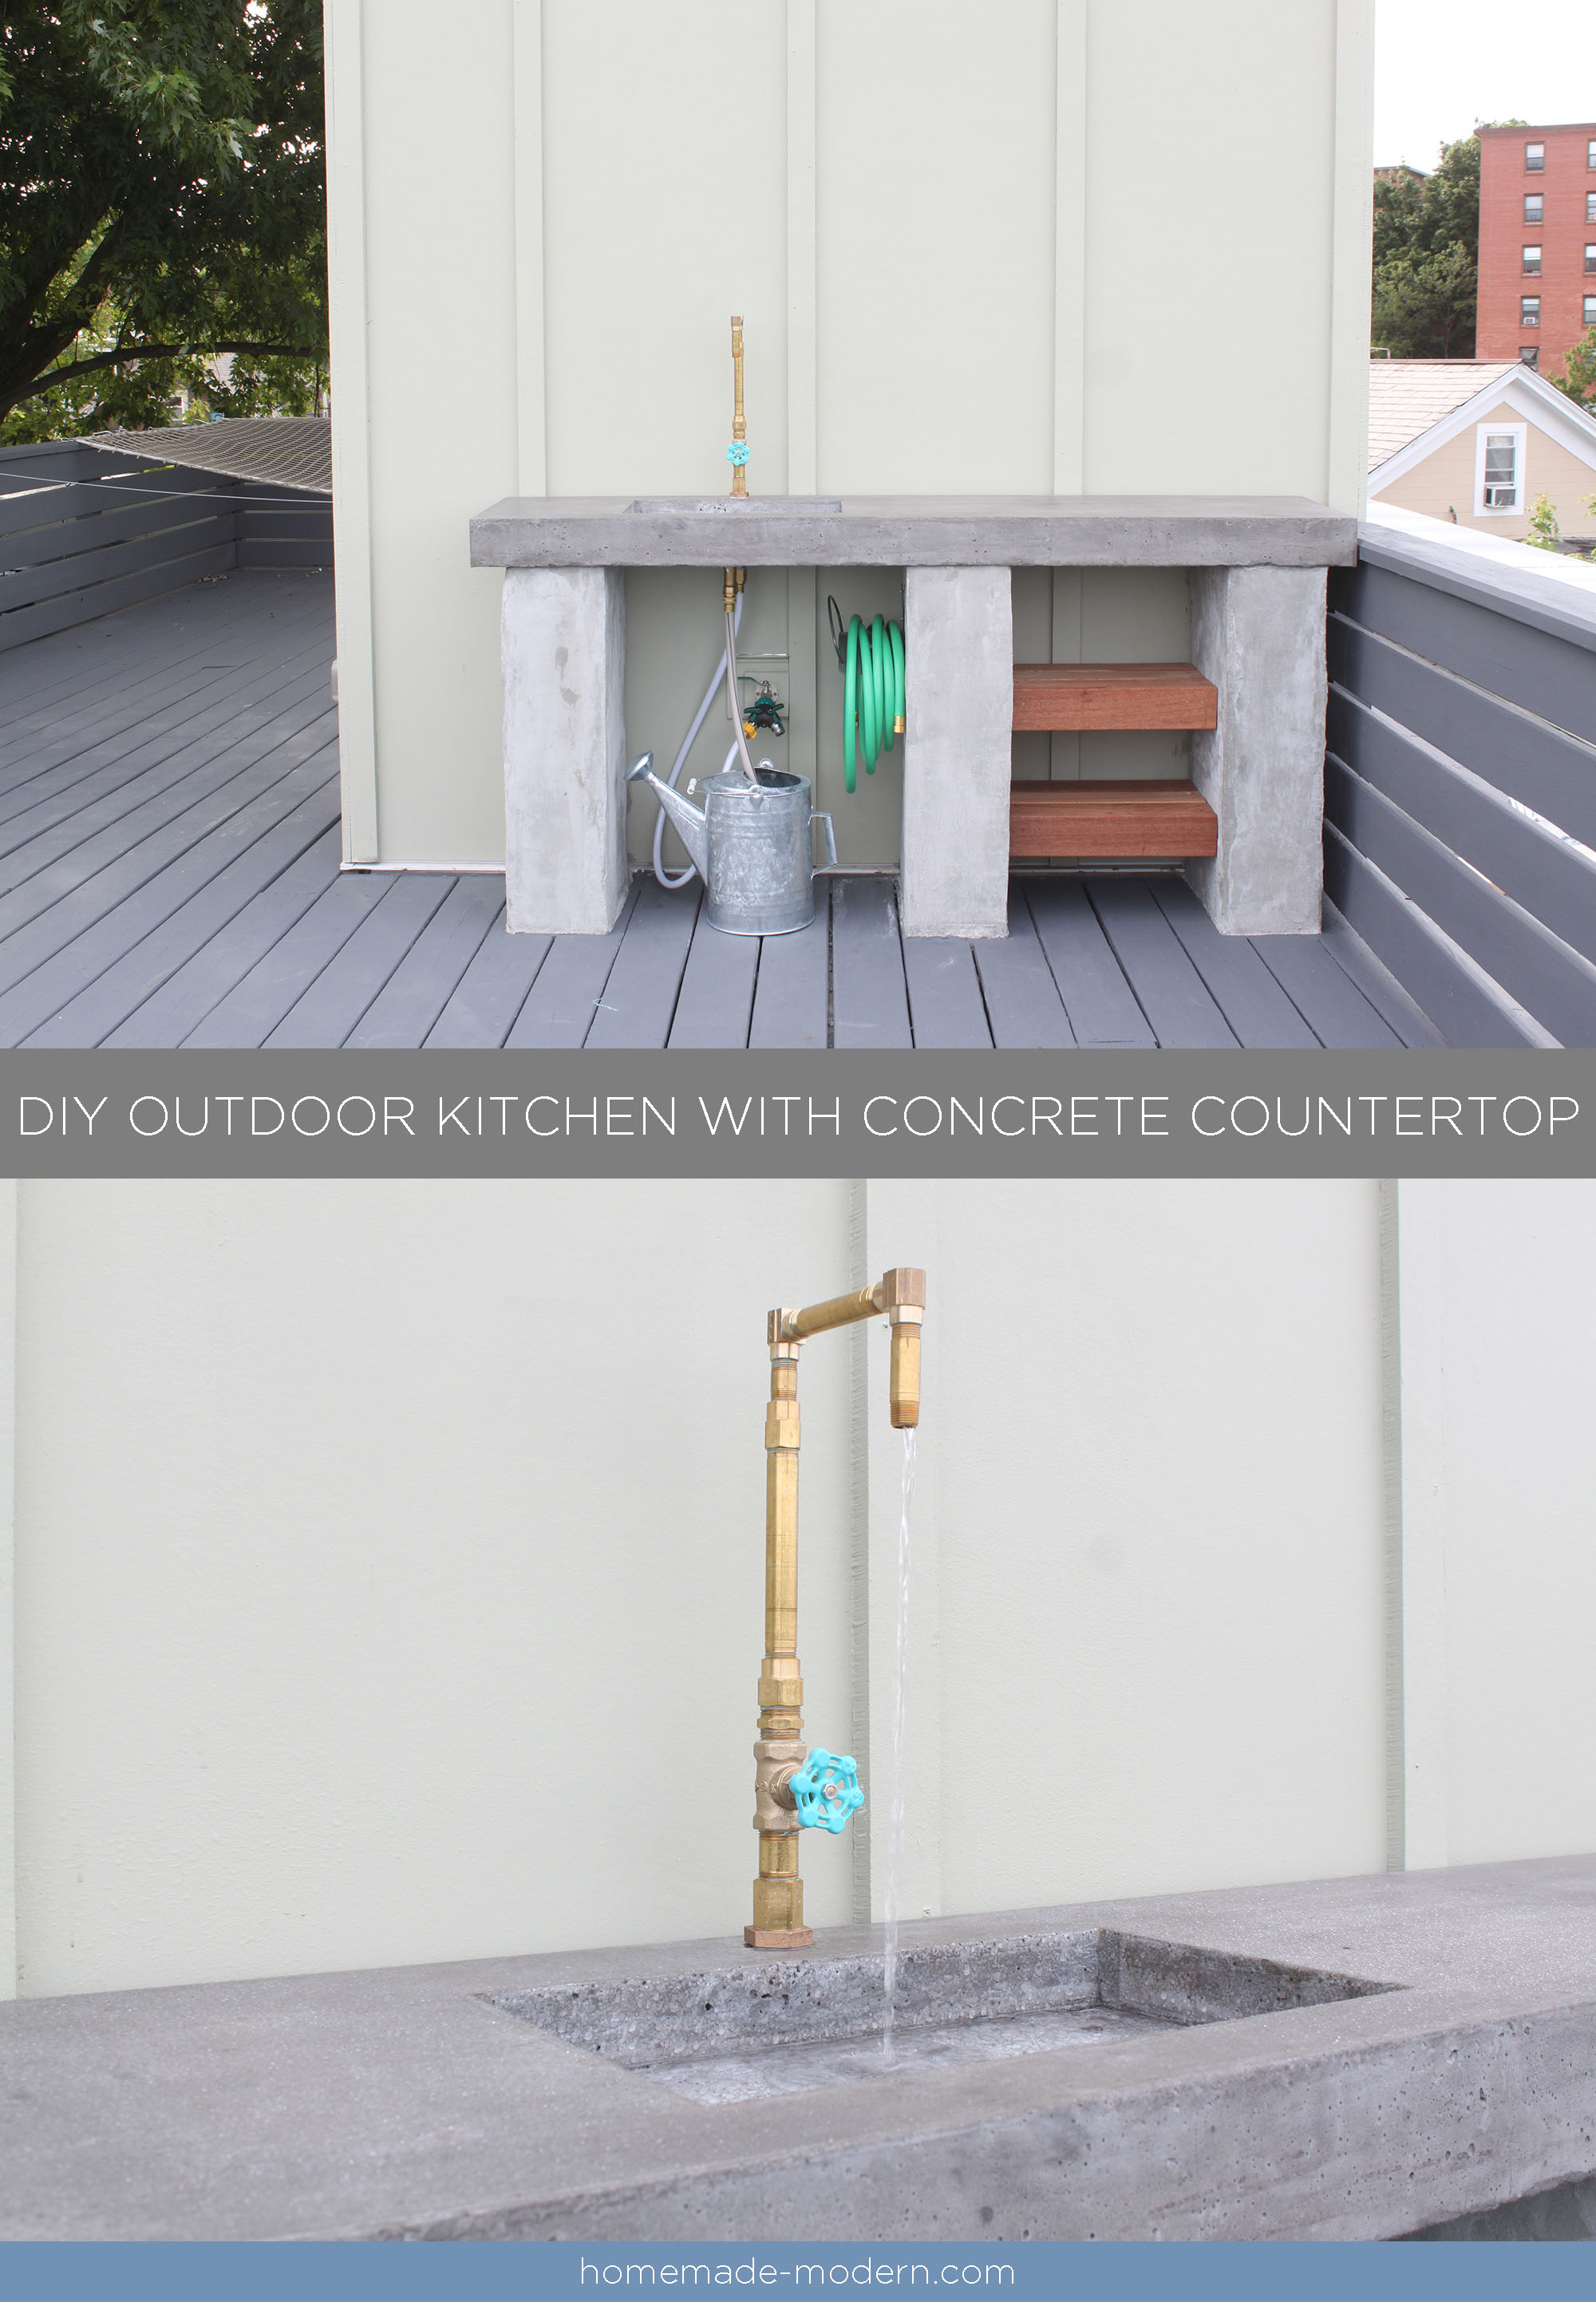 Concrete Countertops Book Homemade Modern Ep96 Diy Outdoor Kitchen With Concrete Countertop